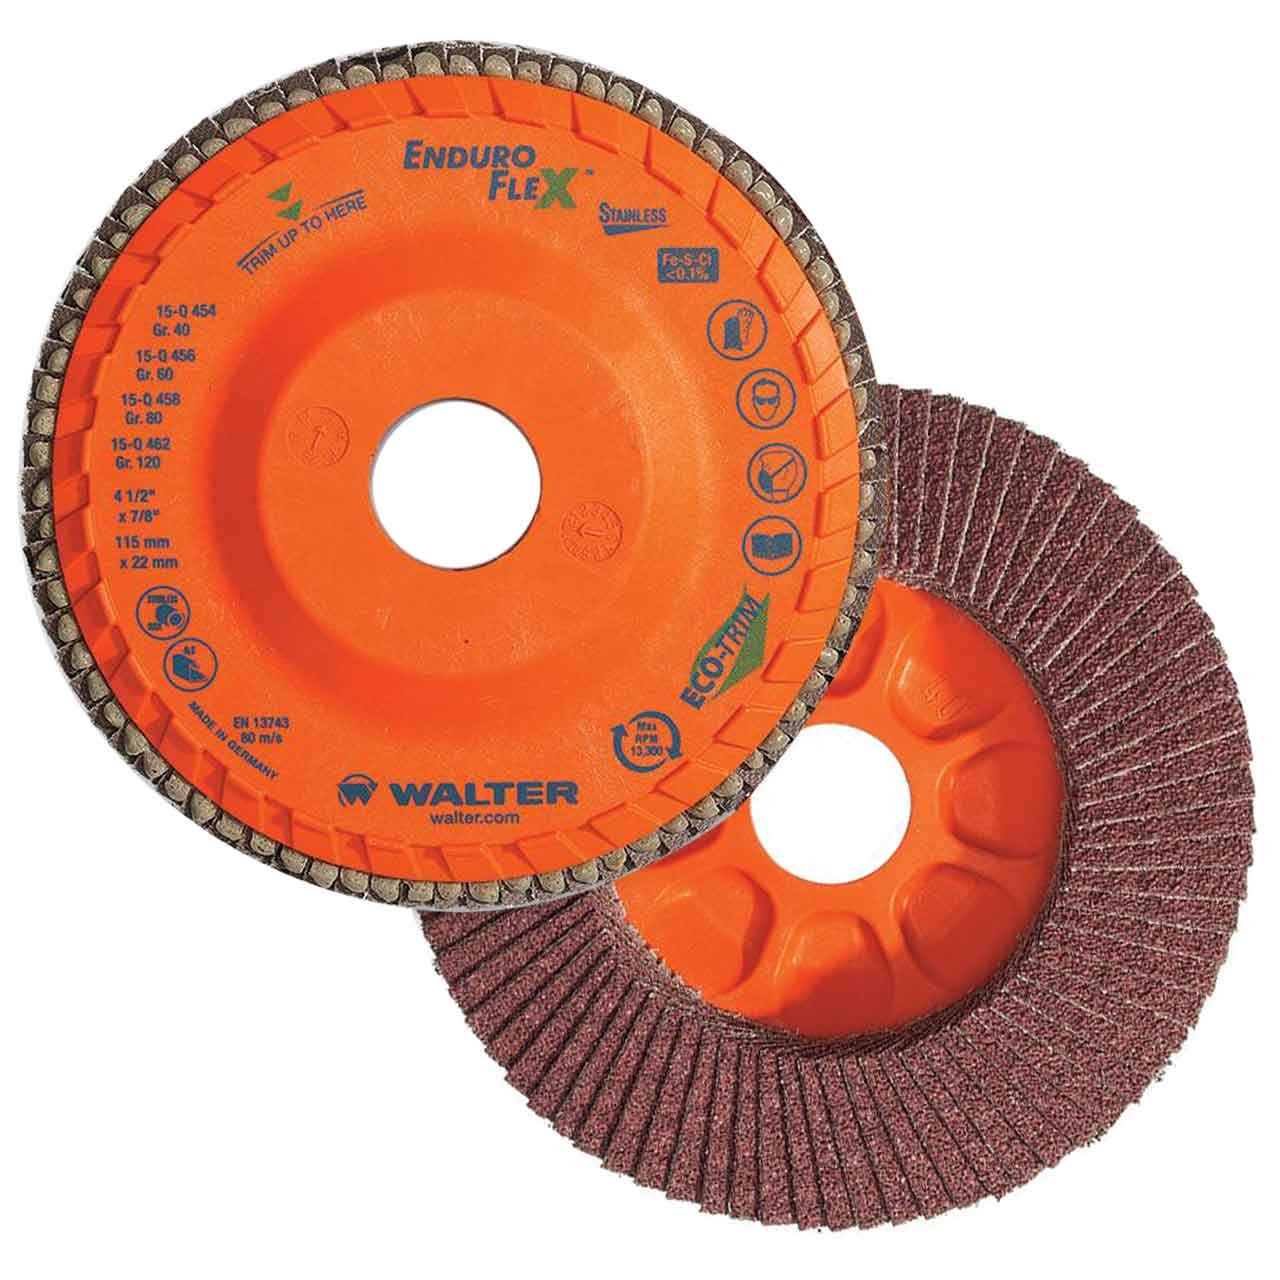 Walter 15Q454 ENDURO-FLEX Abrasive Flap Disc [Pack of 10] - 40 Grit, 4-1/2 in. Grinding Disc with ECO-TRIM Backing. Surface Finishing Discs